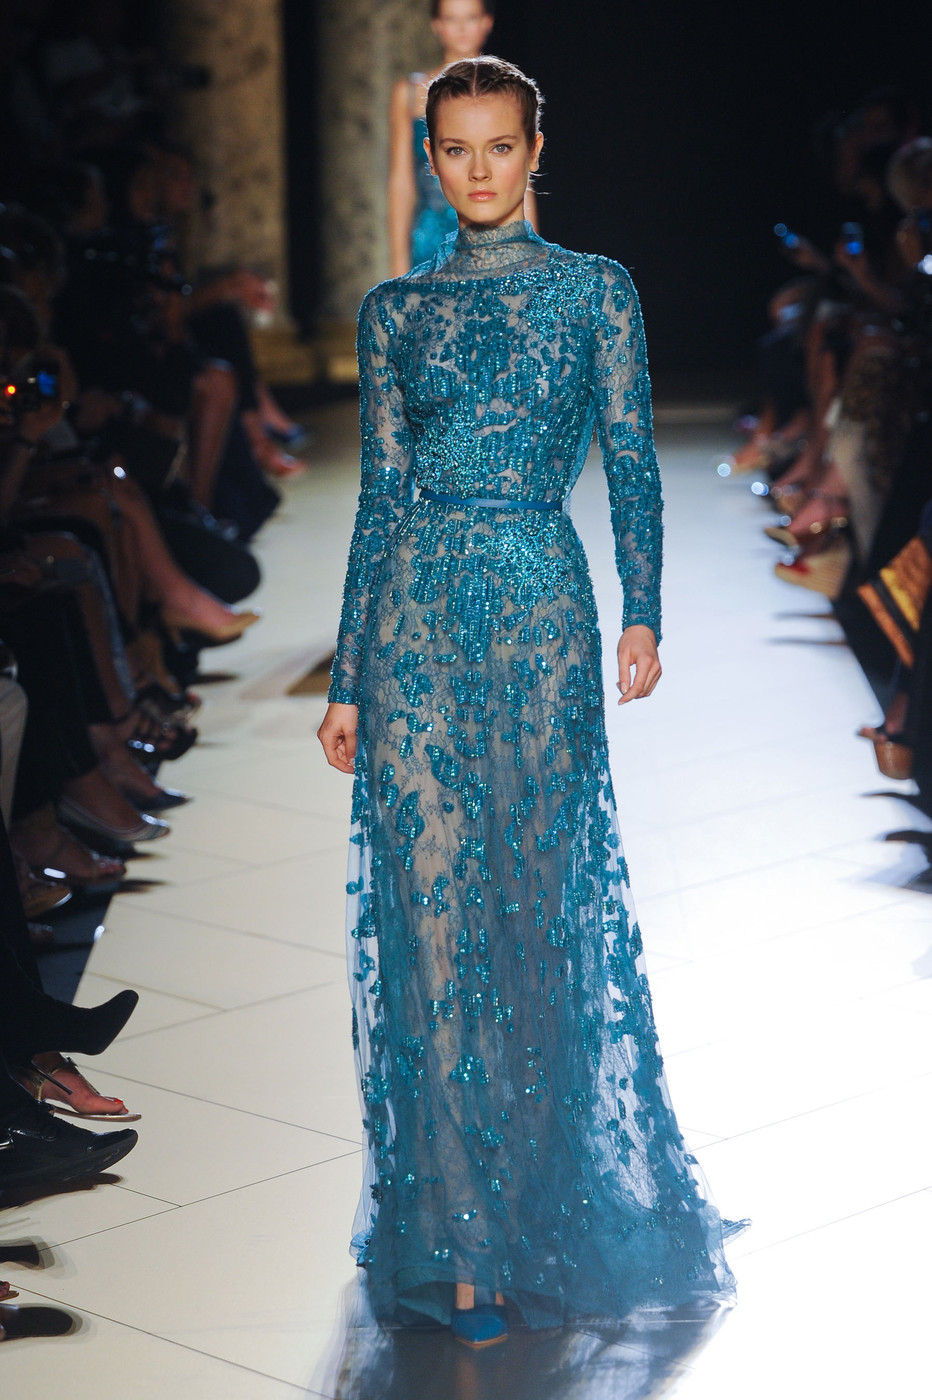 2012 Fall 2013 Winter Nail Polish Trends: Elie Saab At Couture Fall 2012